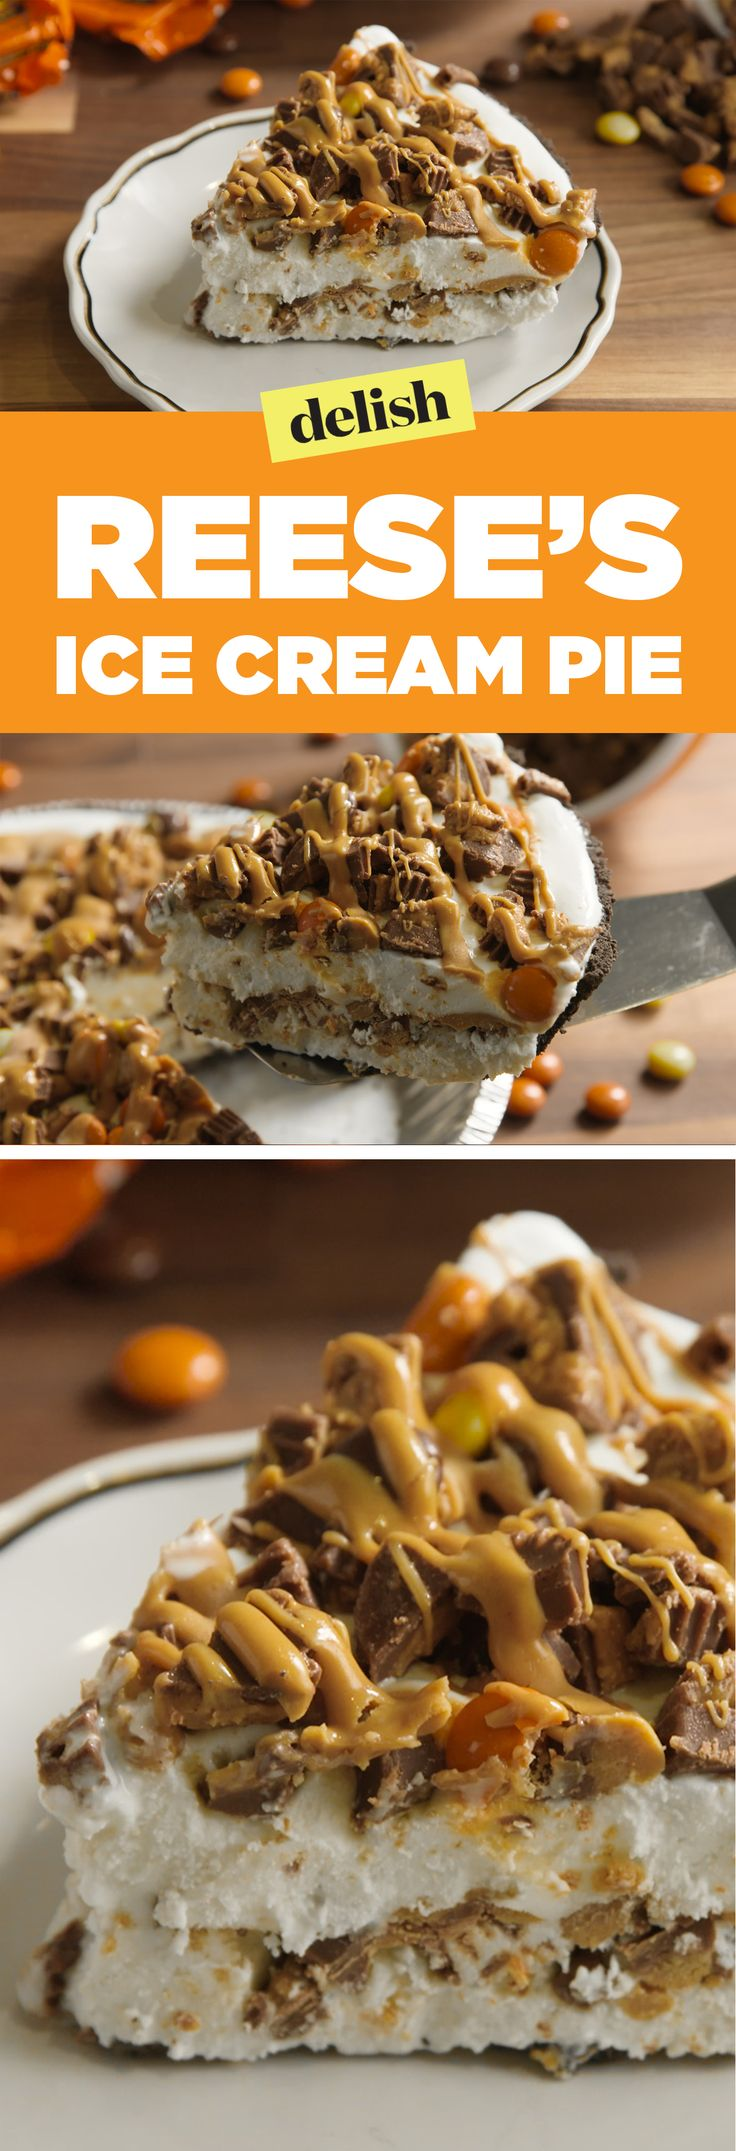 Reese's Ice Cream Pie